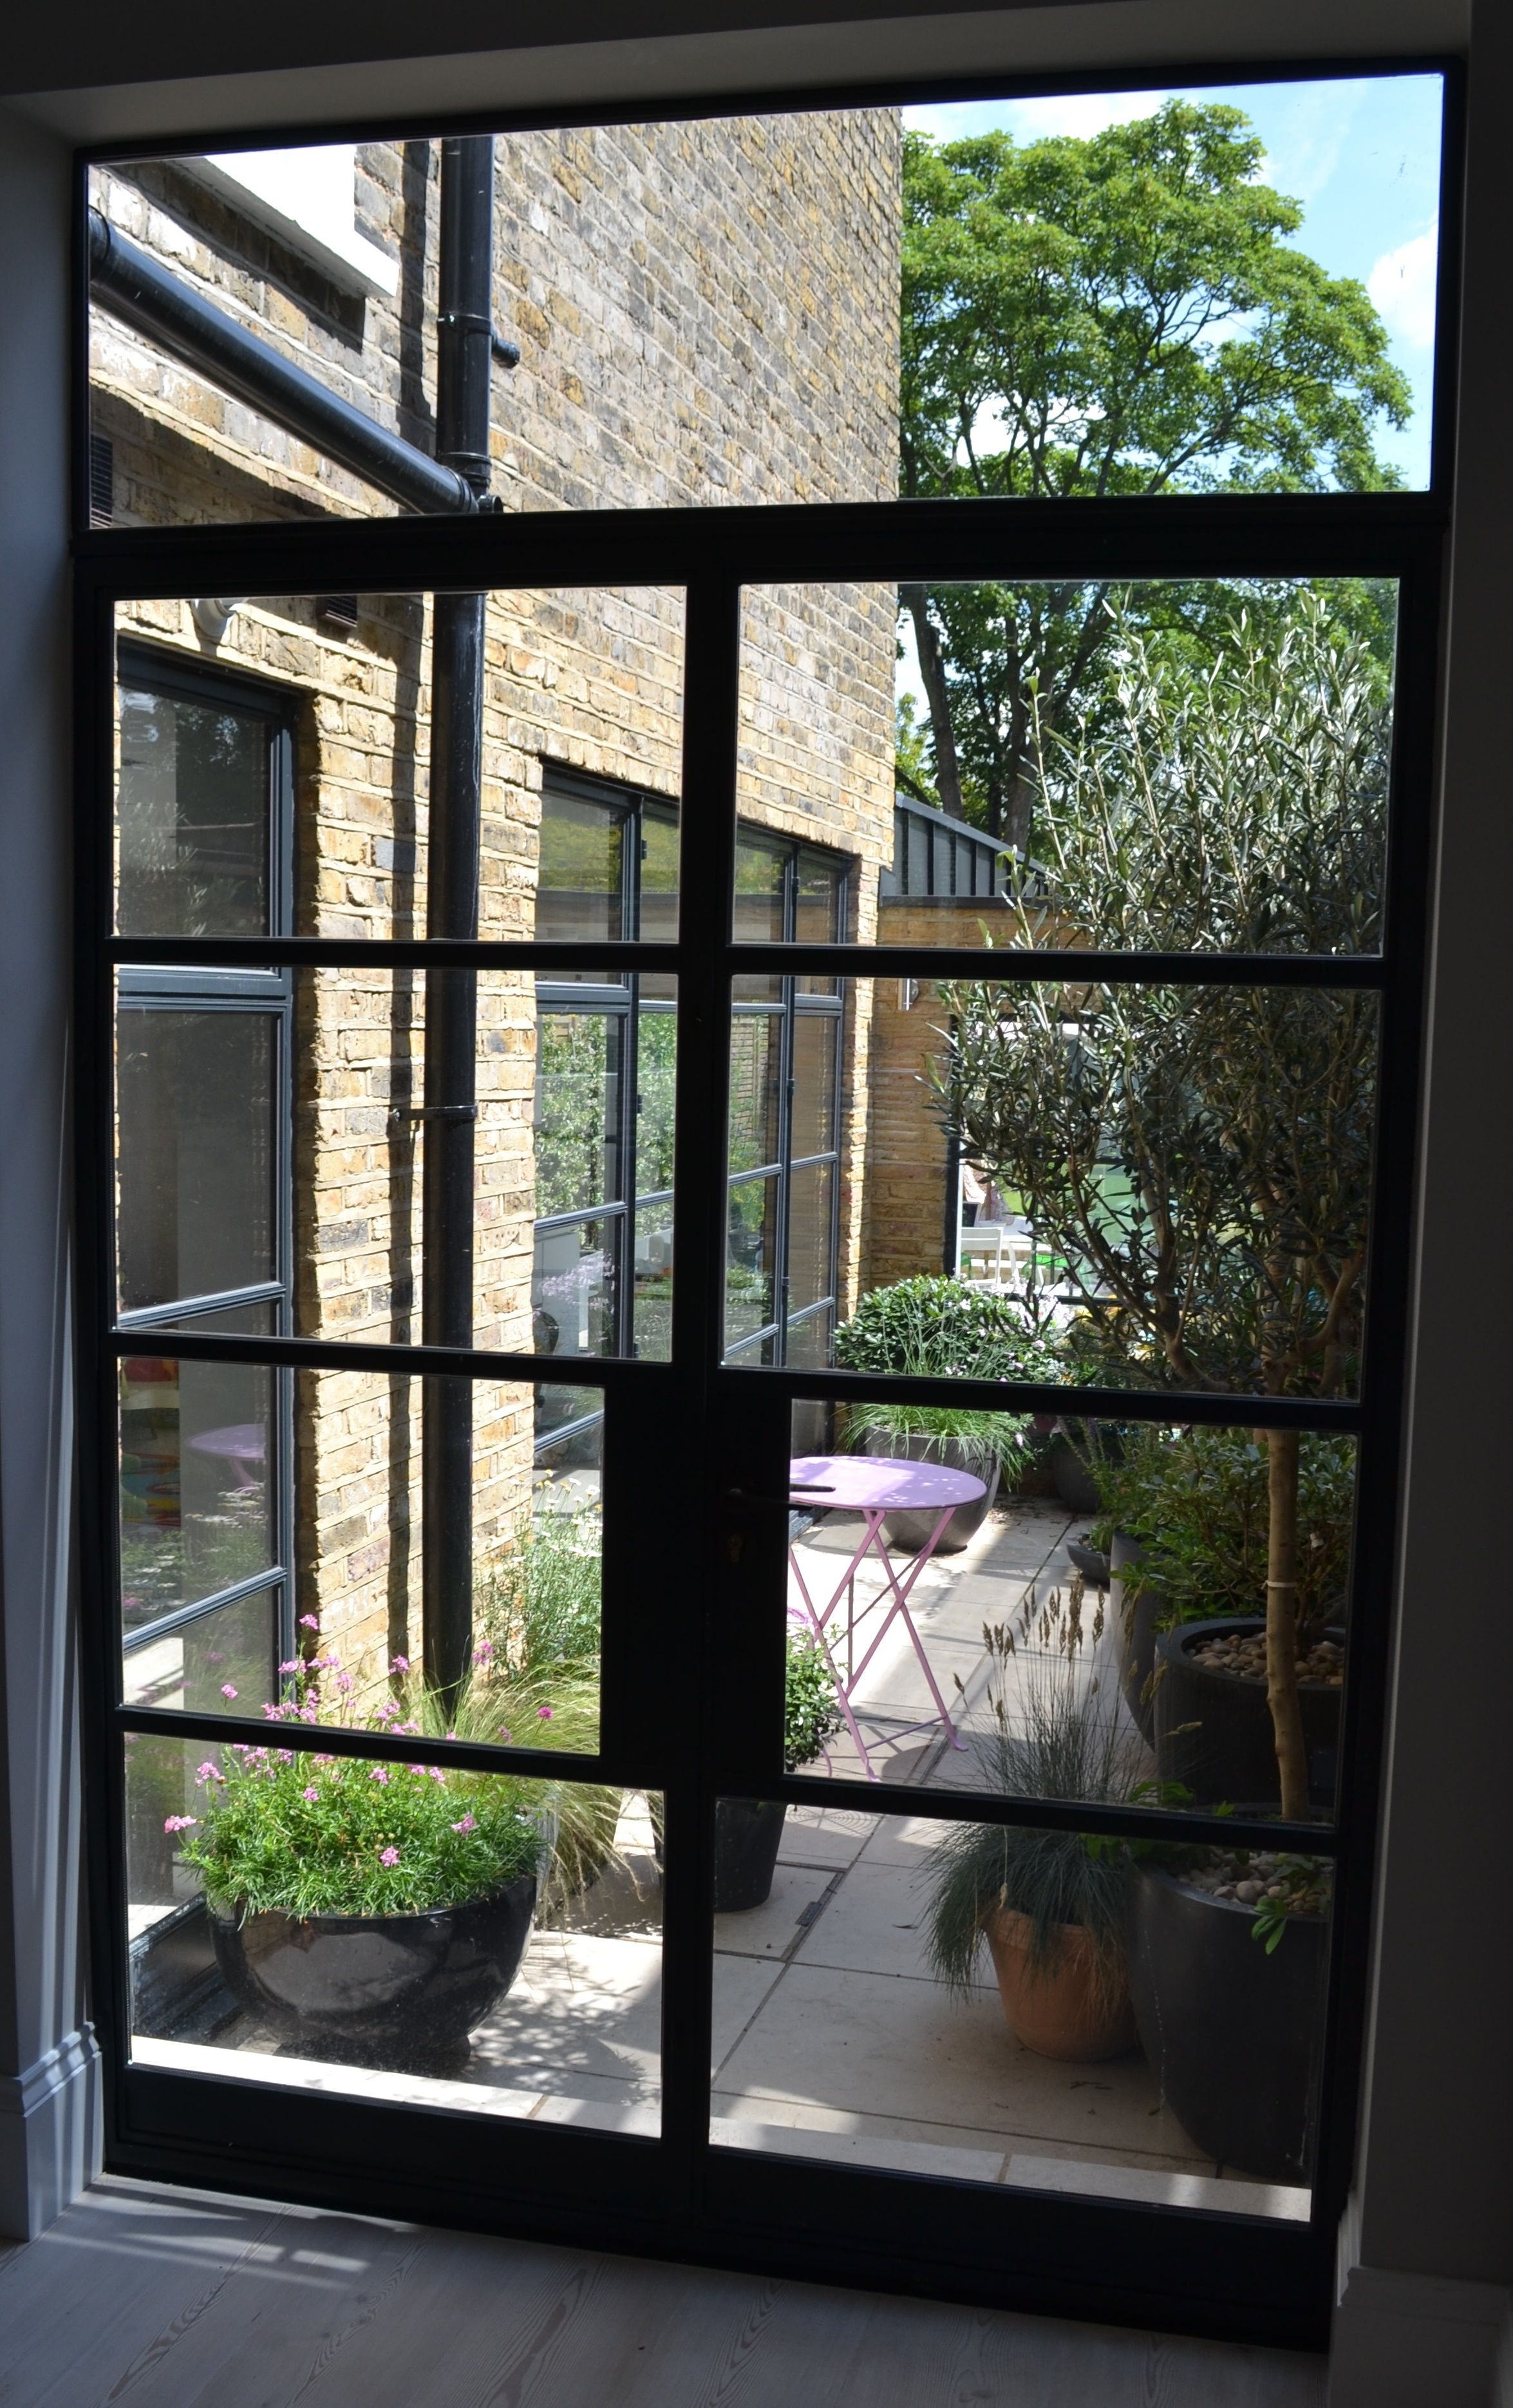 Crittall Steel Doors With A View To Courtyard And